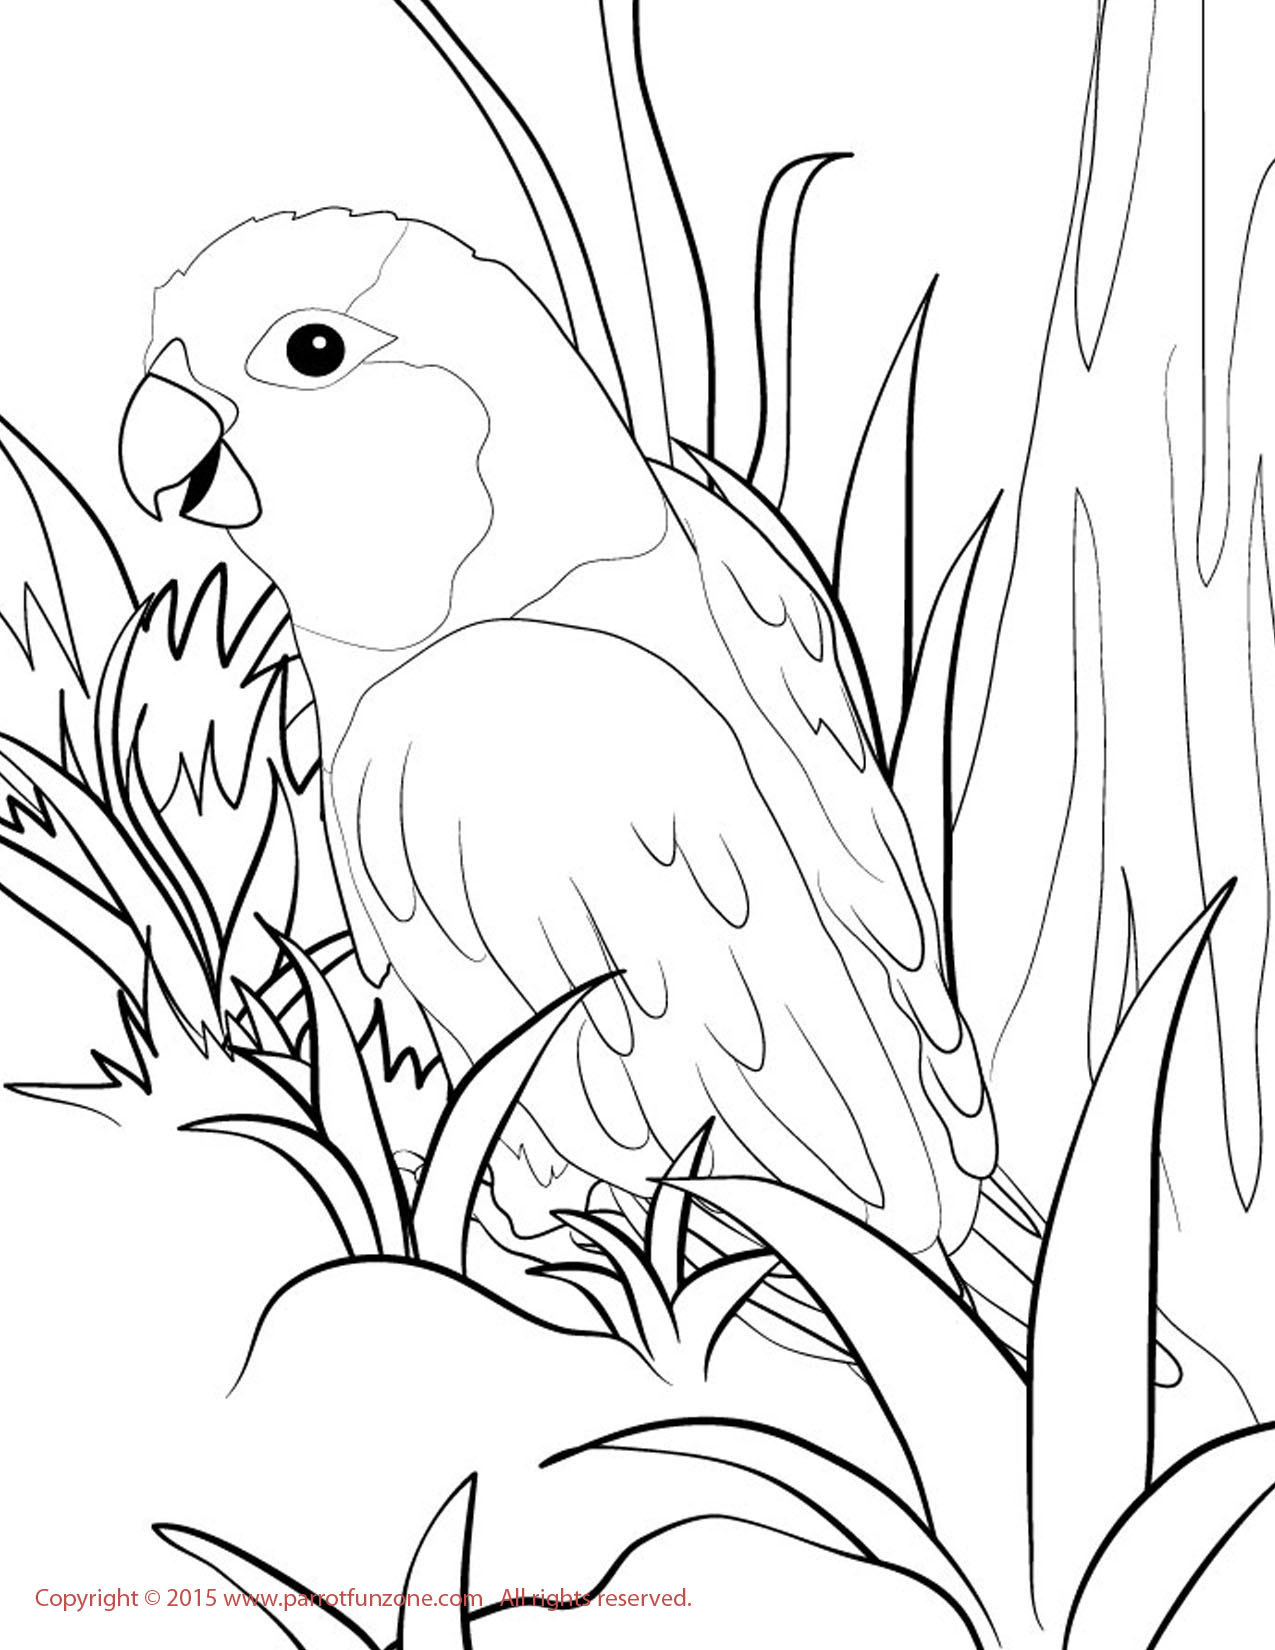 picture of parrot for colouring free printable parrot coloring pages for kids for picture parrot of colouring